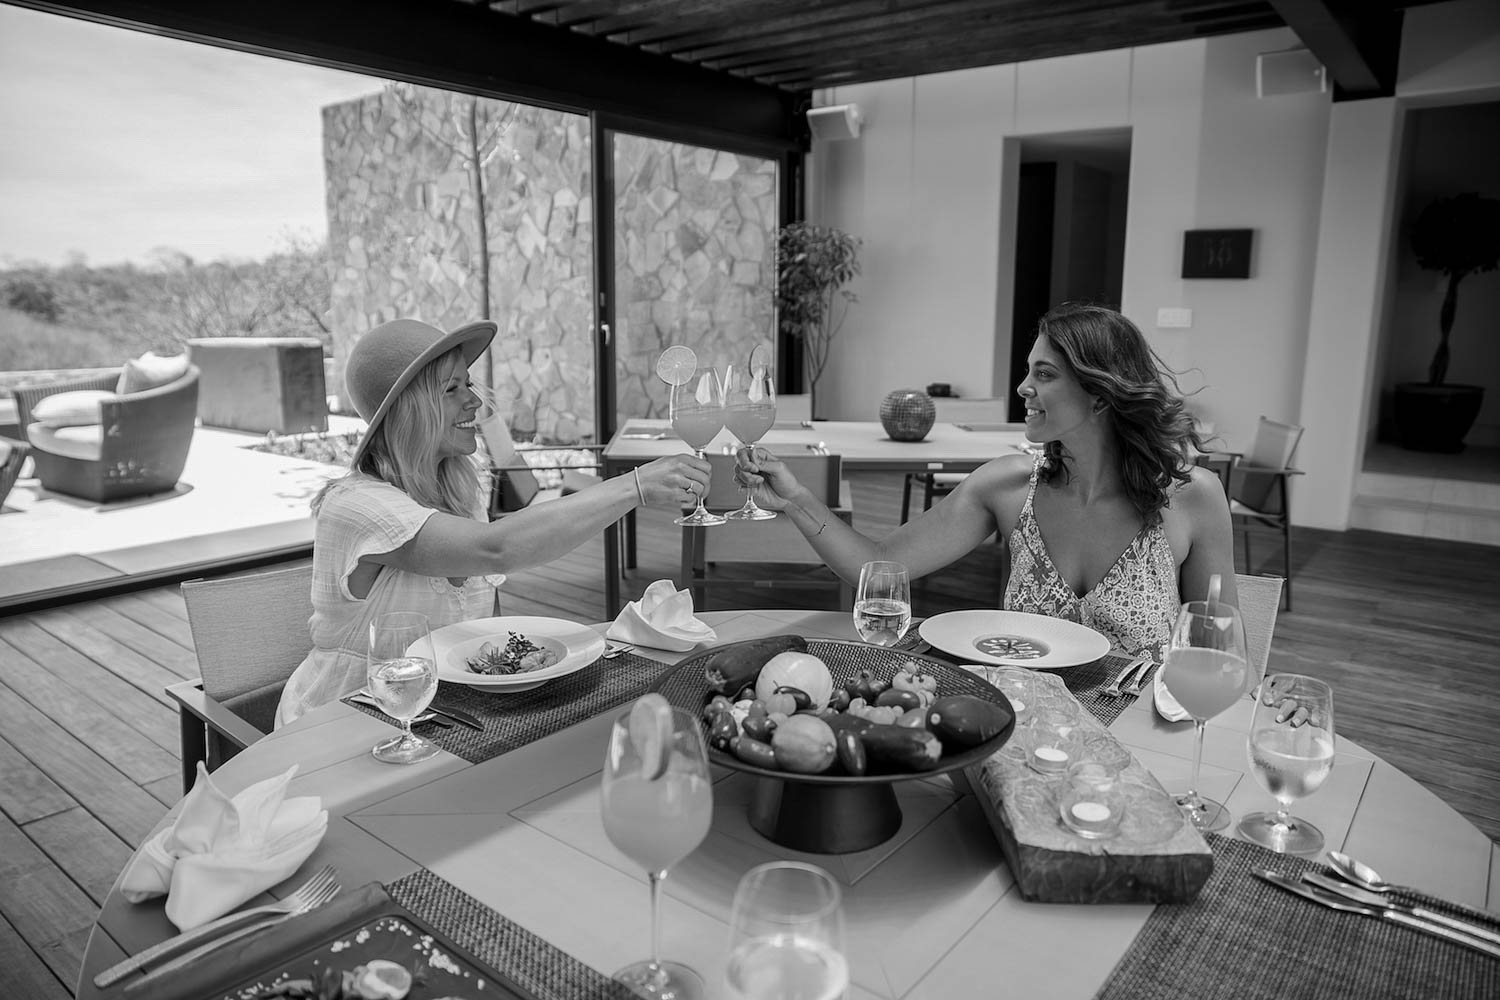 WANDER WELL - In an exclusive interview, Wander Well's co-founders Cait Fraser &Vitina Blumenthal tell us the story behind Wander Well, give us the scoop on their favorite wellness hotels around the world, and clue us in on what's next in wellness travel...